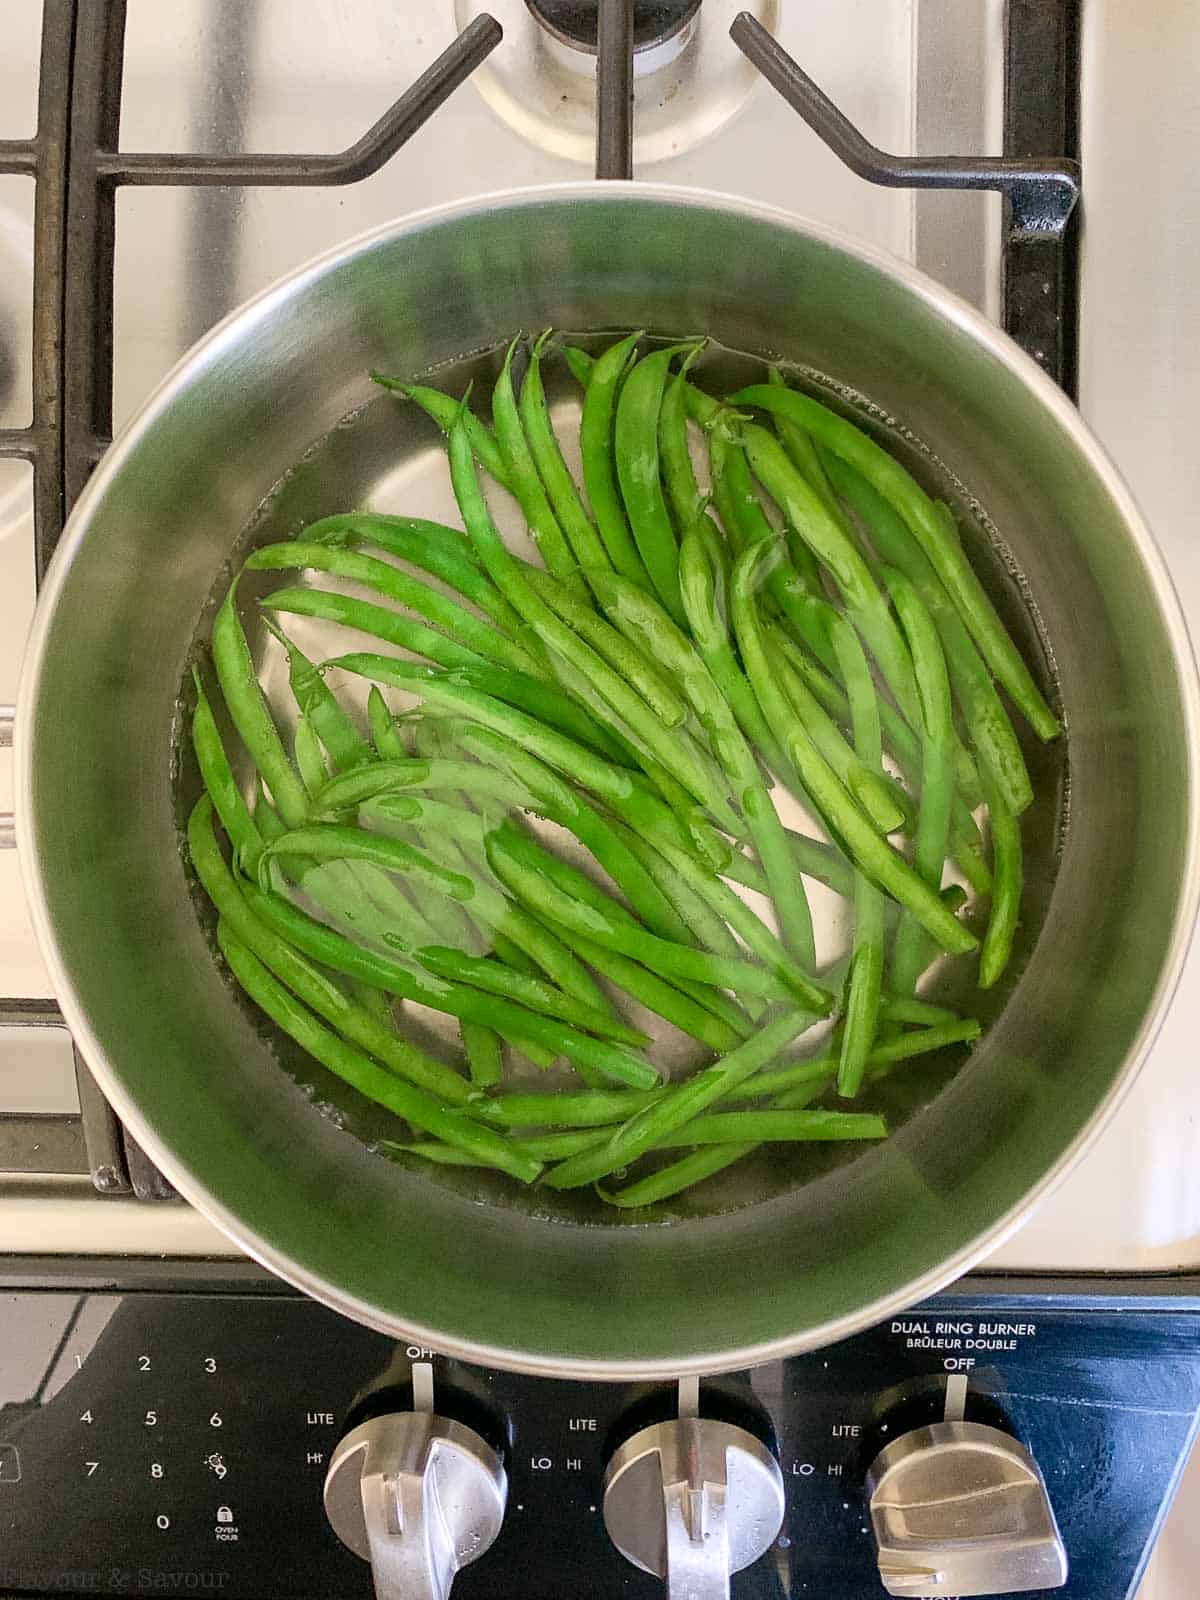 Blanching green beans in boiling water